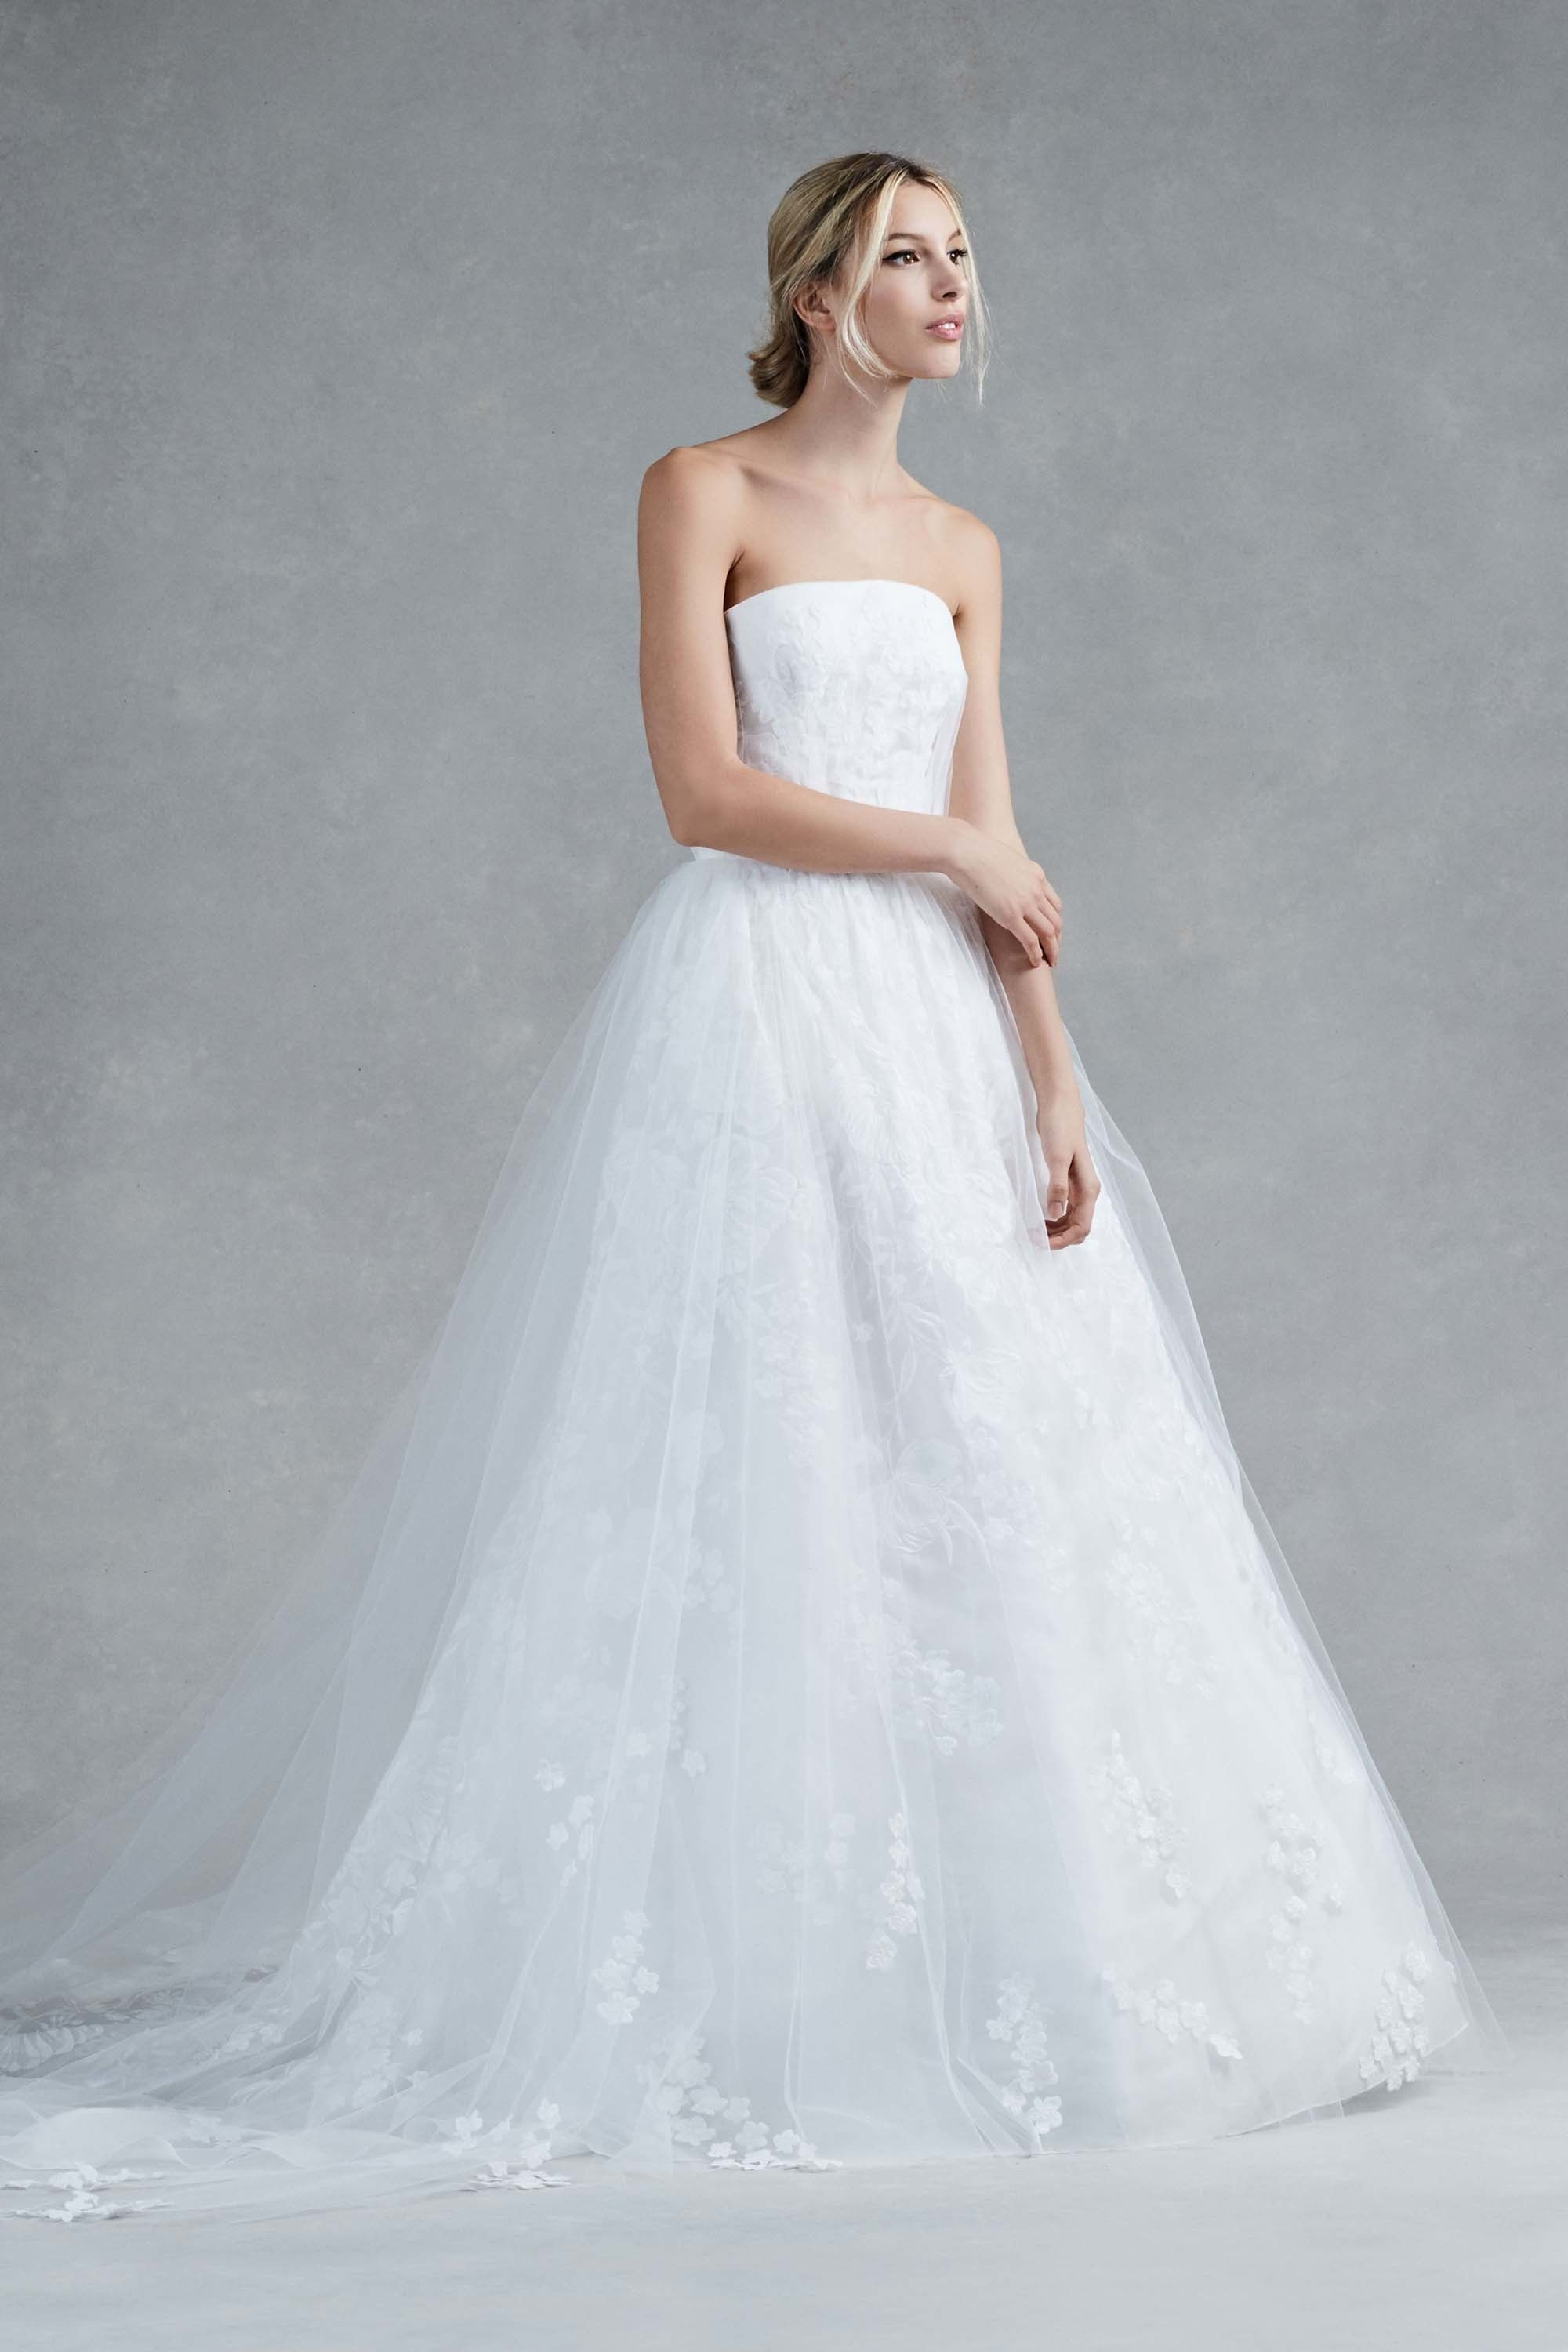 80 Princess Wedding Dresses - Romantic Bridal Ball Gowns